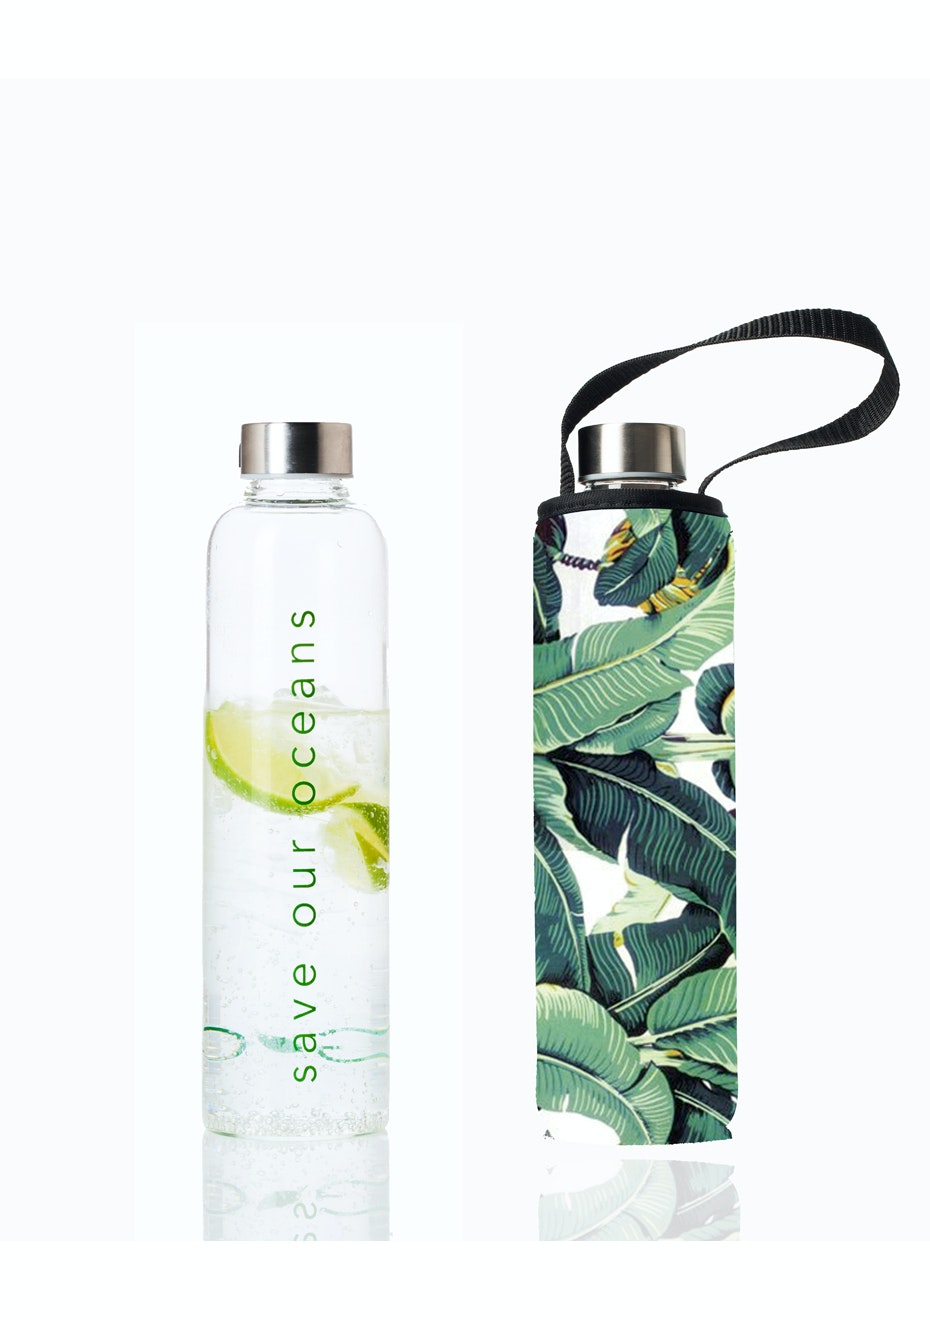 BBBYO - Glass Is Greener Bottle 750 ml + Carry Cover (Banana Print) -750 ml